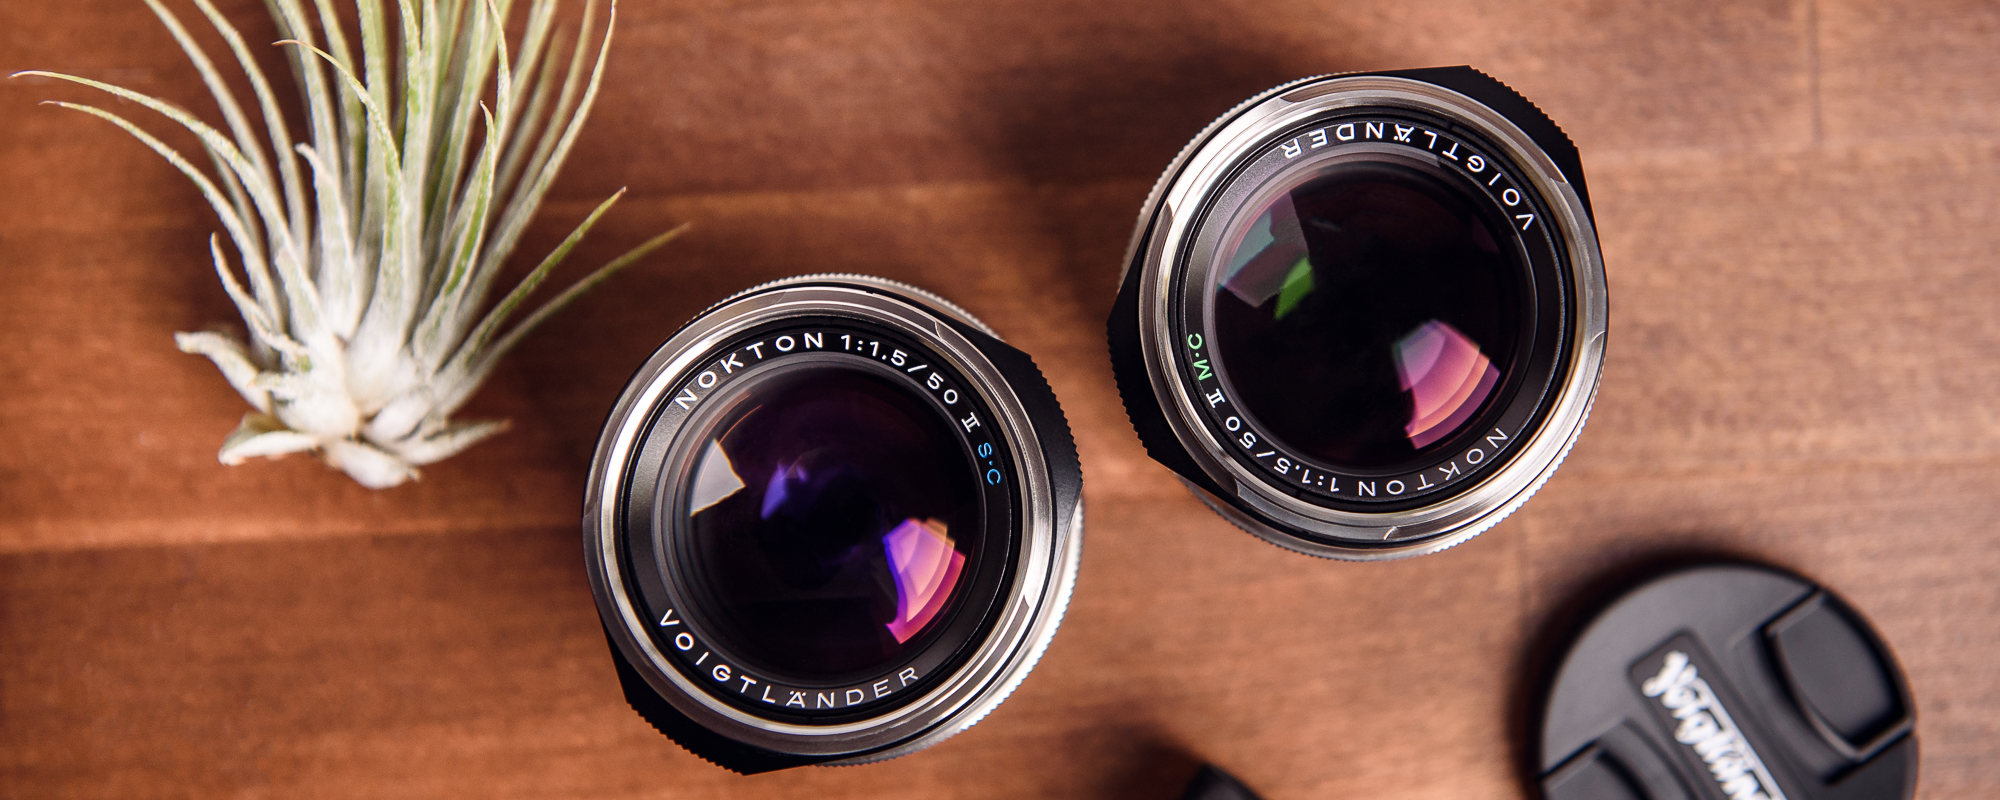 Voigtlander Nokton II 50 mm f/1.5 lens for Leica M - MC and SC coatings